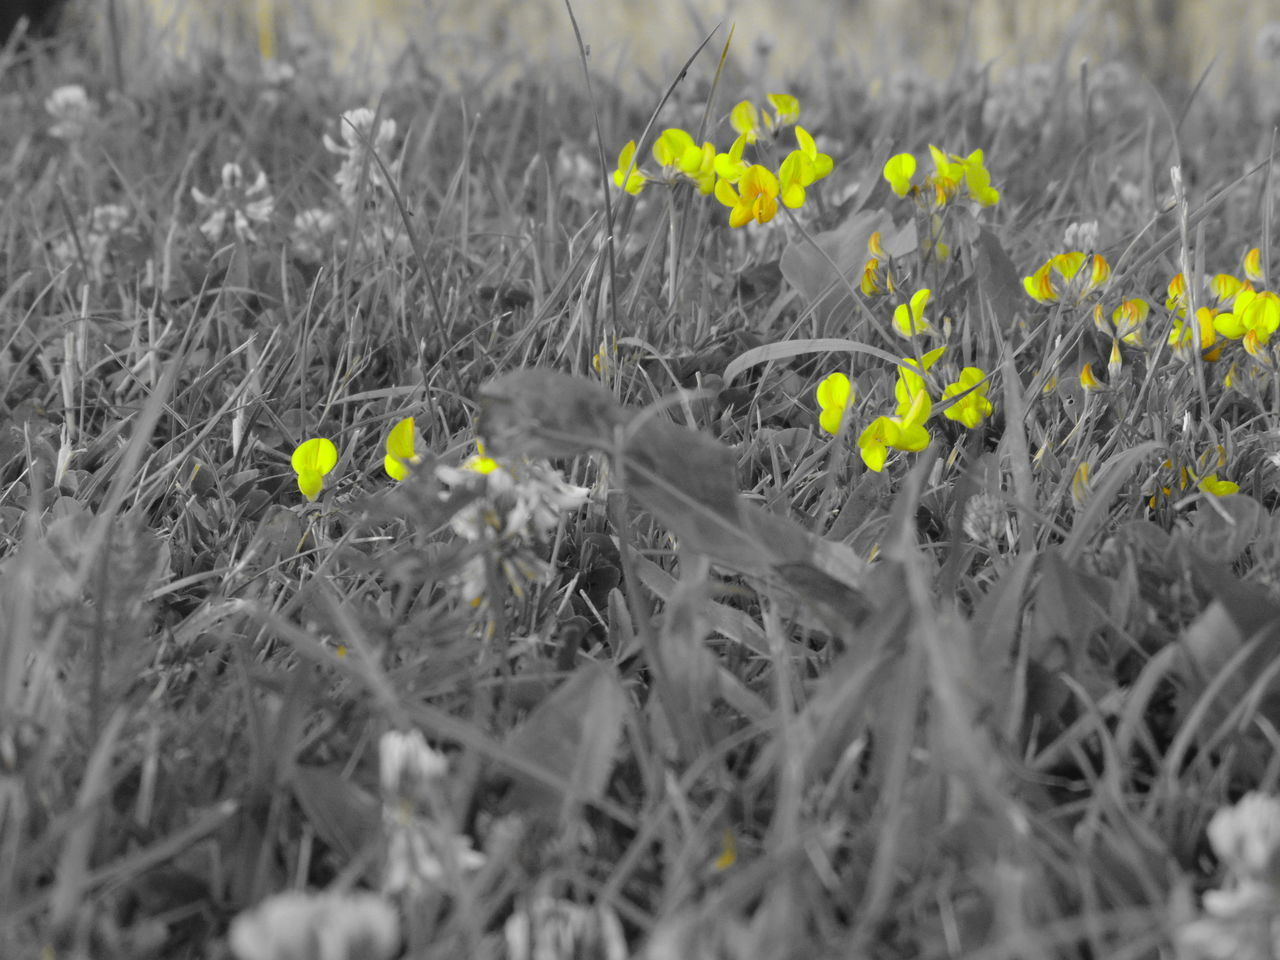 plant, flower, flowering plant, growth, fragility, vulnerability, freshness, selective focus, beauty in nature, field, land, nature, close-up, no people, petal, day, flower head, yellow, inflorescence, outdoors, springtime, spring